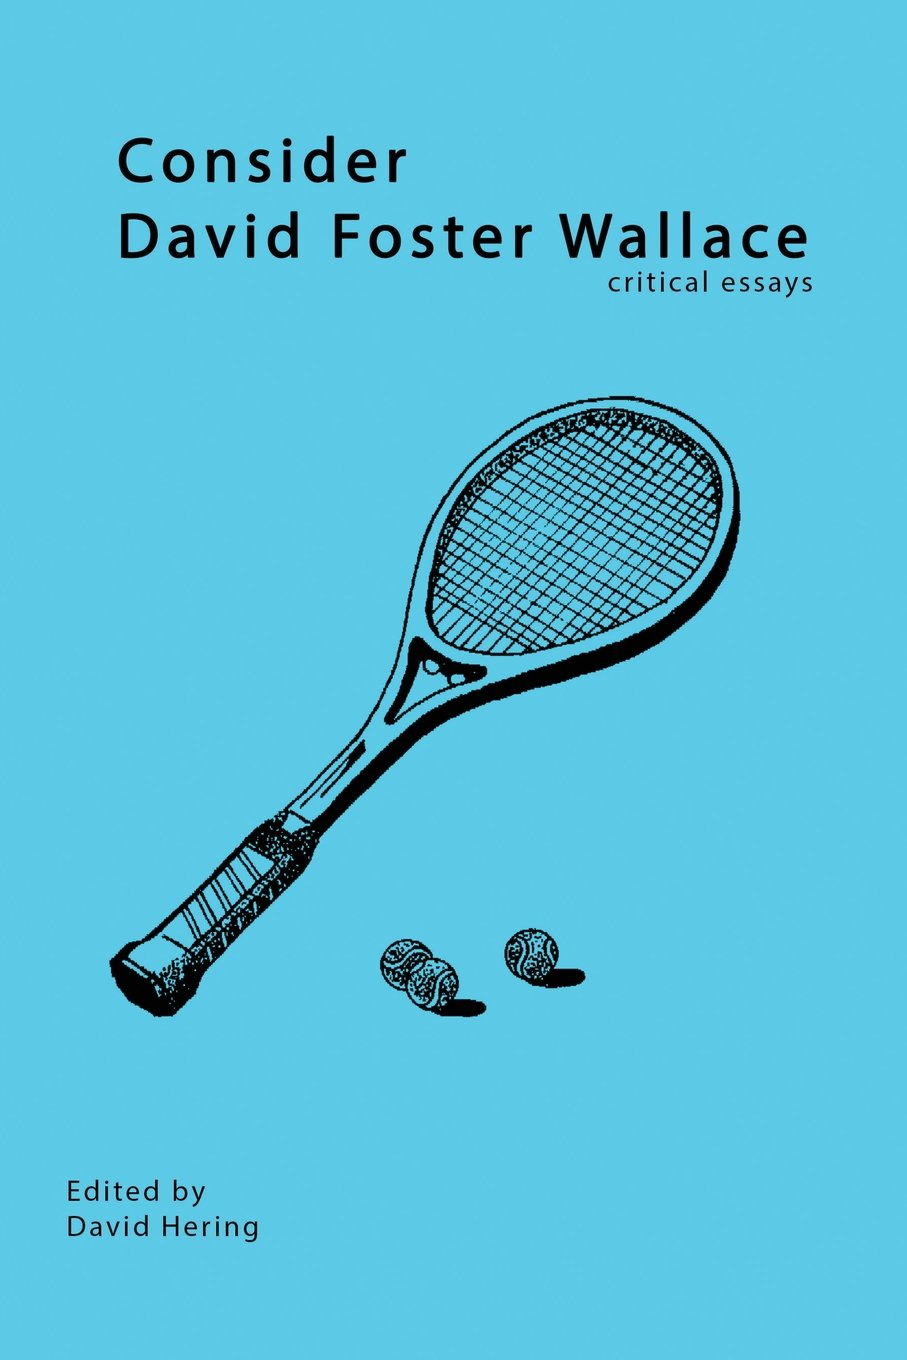 003 61ghzfb 6bl Essay Example David Foster Wallace Formidable Essays Amazon And The Long Thing New On Novels Cruise Ship Full